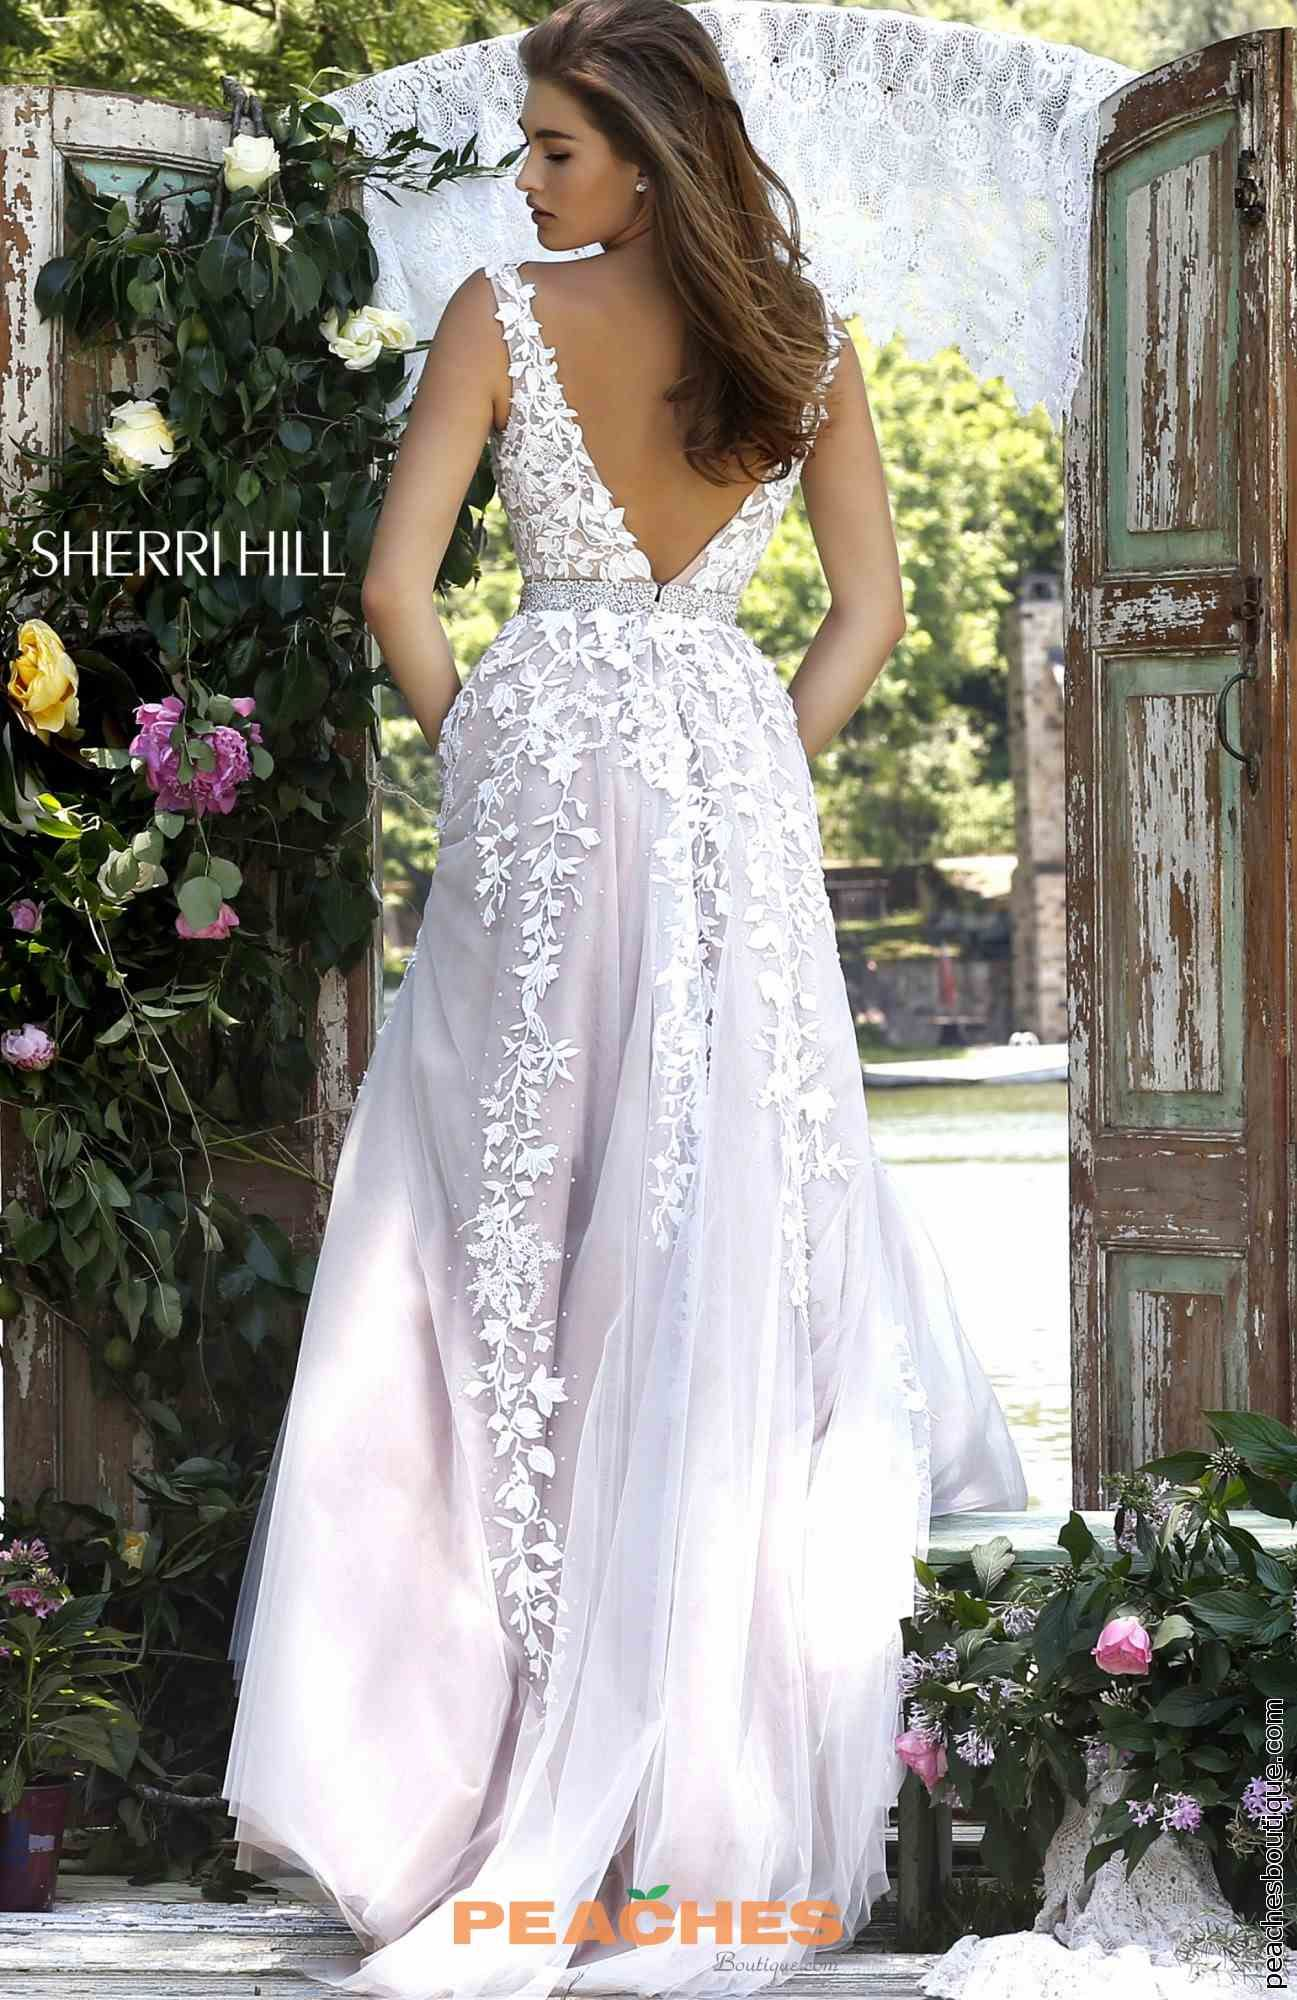 Sherri Hill V- Neckline A Line Dress 11335 | HOCO/Prom Dresses ...